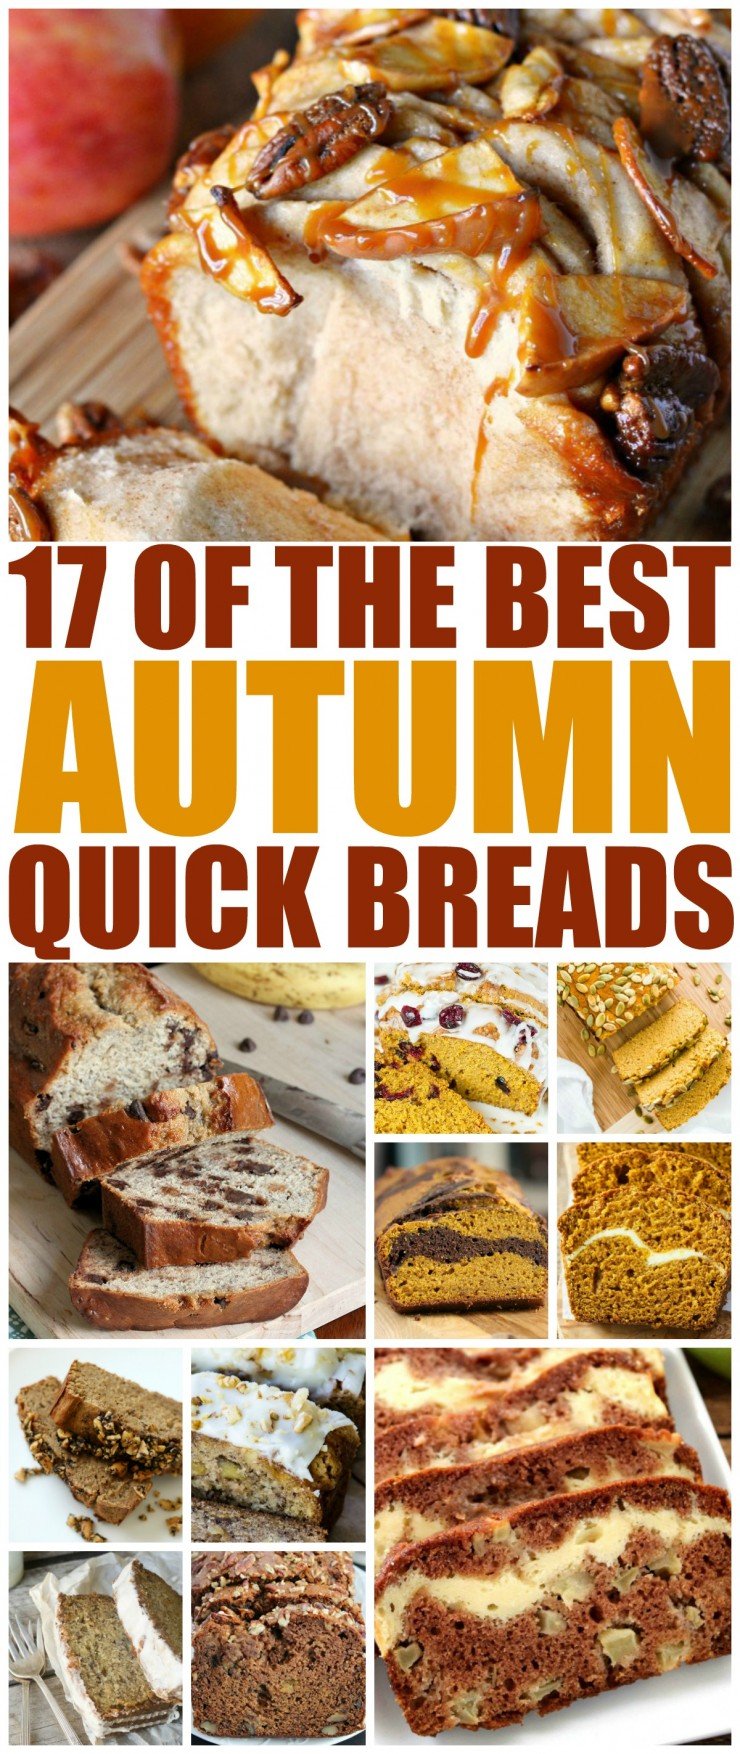 These are 17 of the Best Autumn Quick Bread recipes from popular blogs across the web. Perfect for a cool fall evening with a mug of coffee or even to serve at your thanksgiving dinner, these fall quick breads are sure to delight!